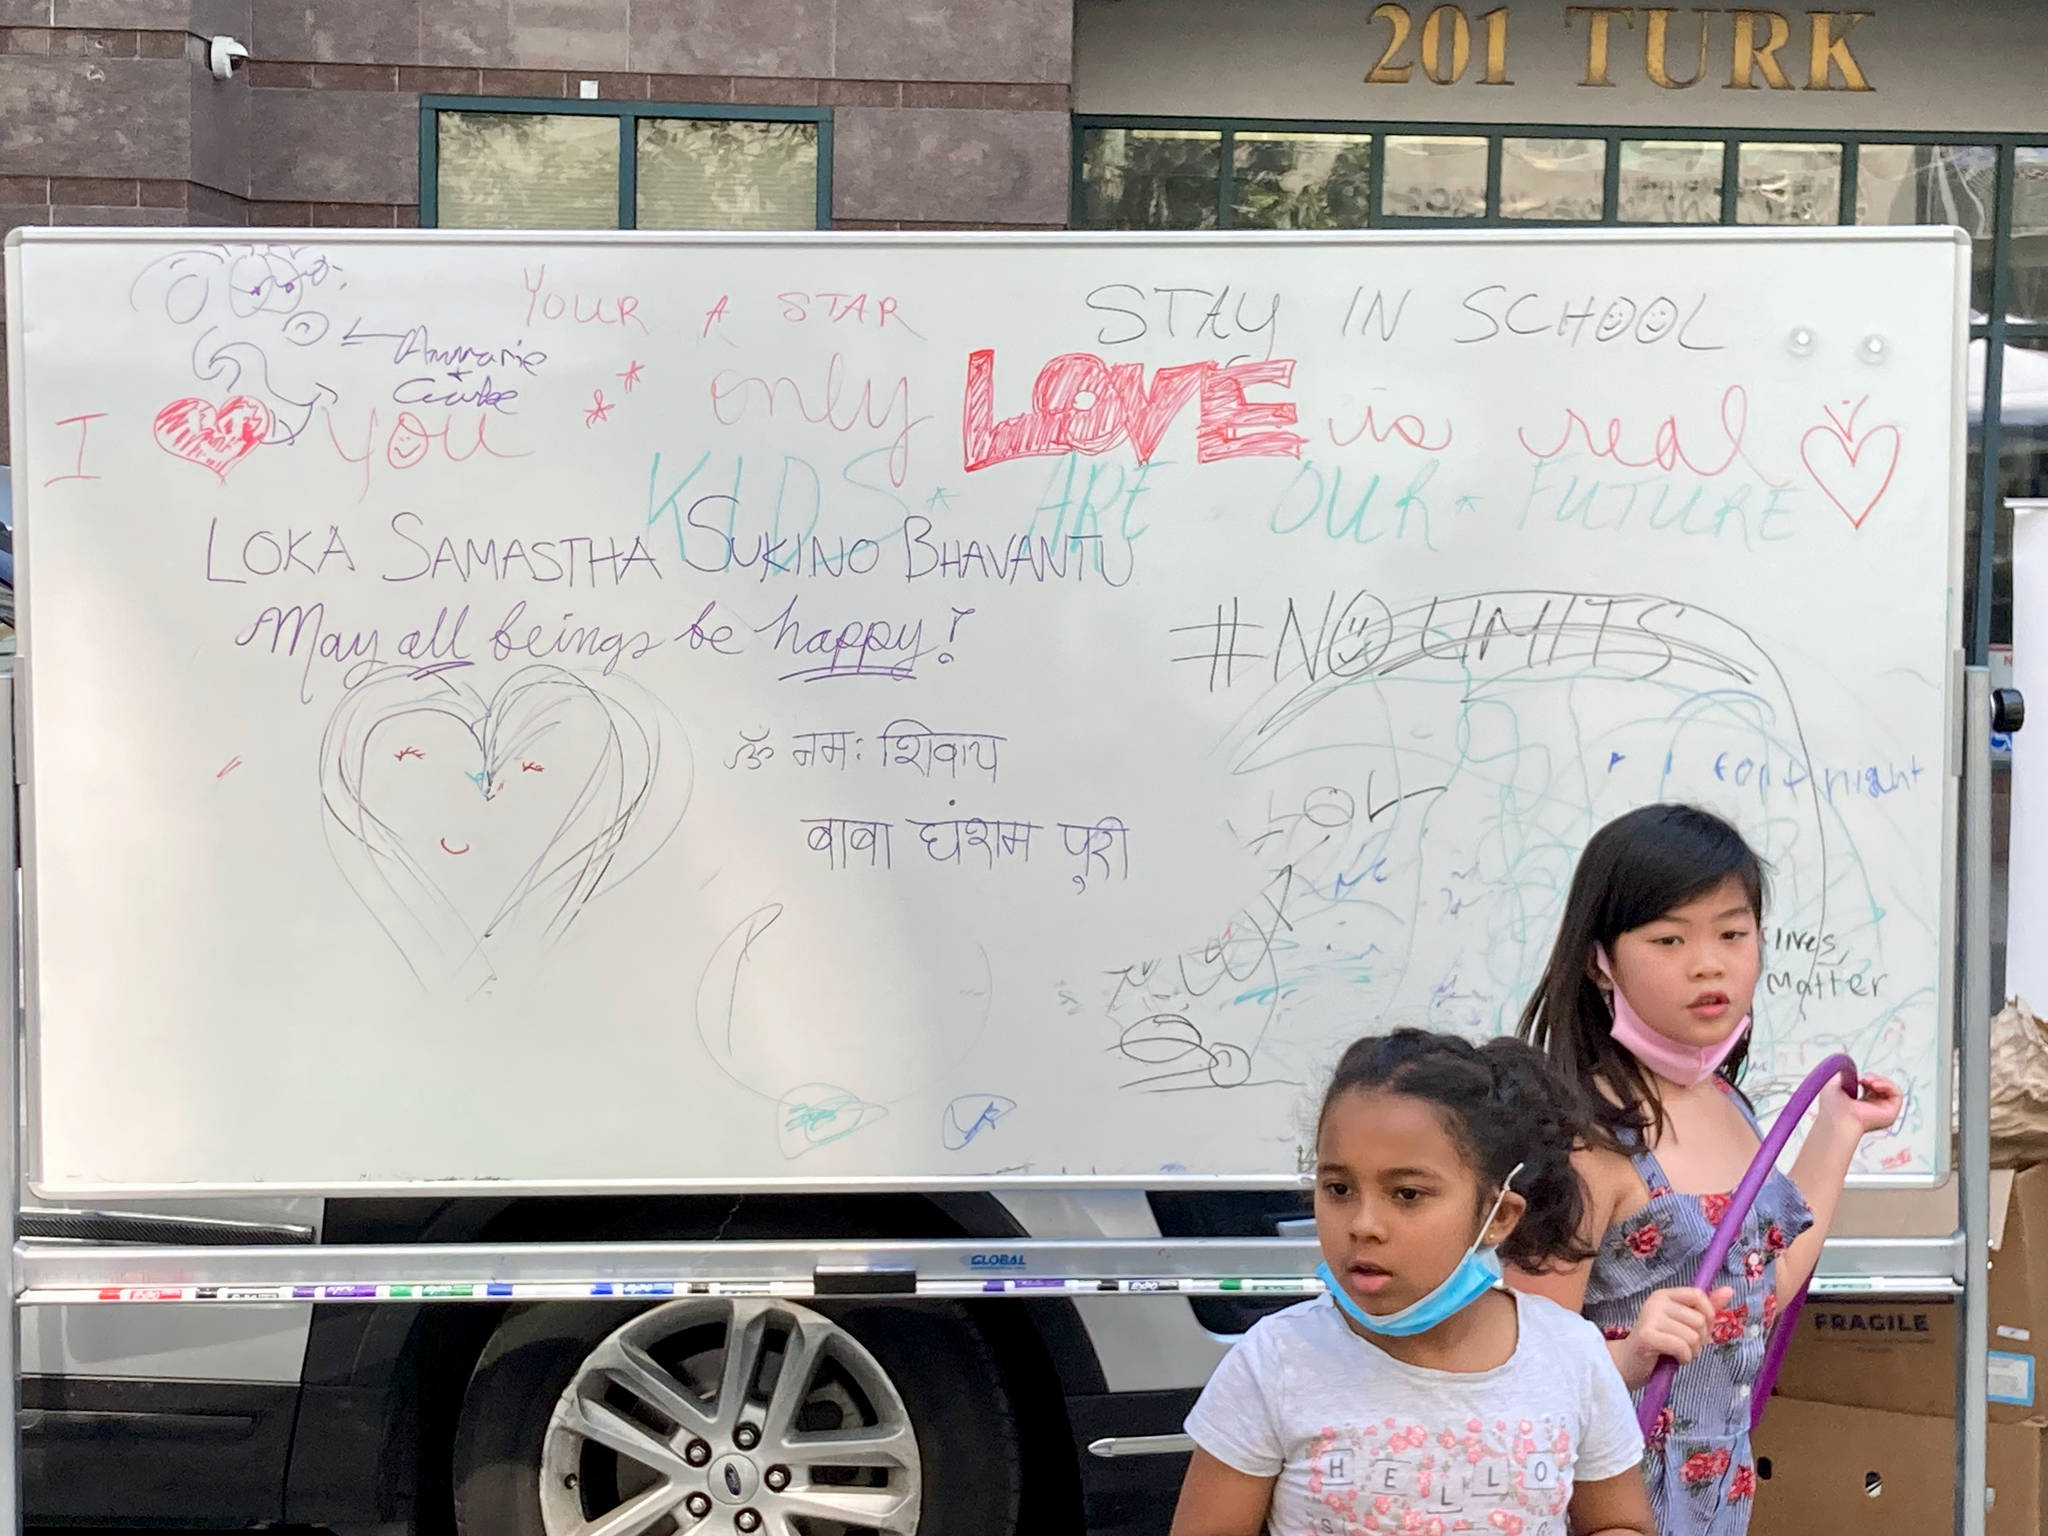 A dry erase board gave Tenderloin youth a chance for self-expression. (By Sakura Sato/Special to the S.F. Examiner)